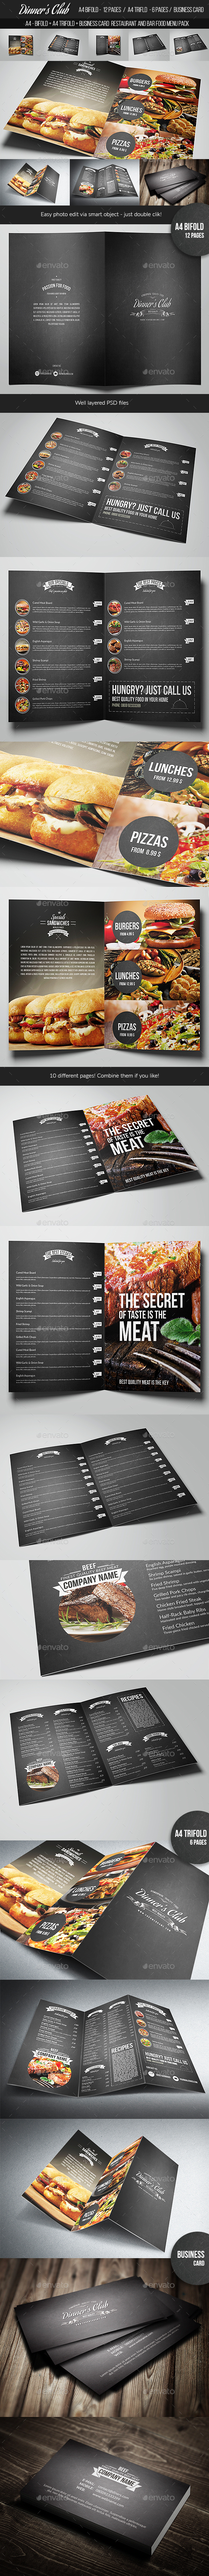 Restaurant and Bar Menu Pack - Food Menus Print Templates